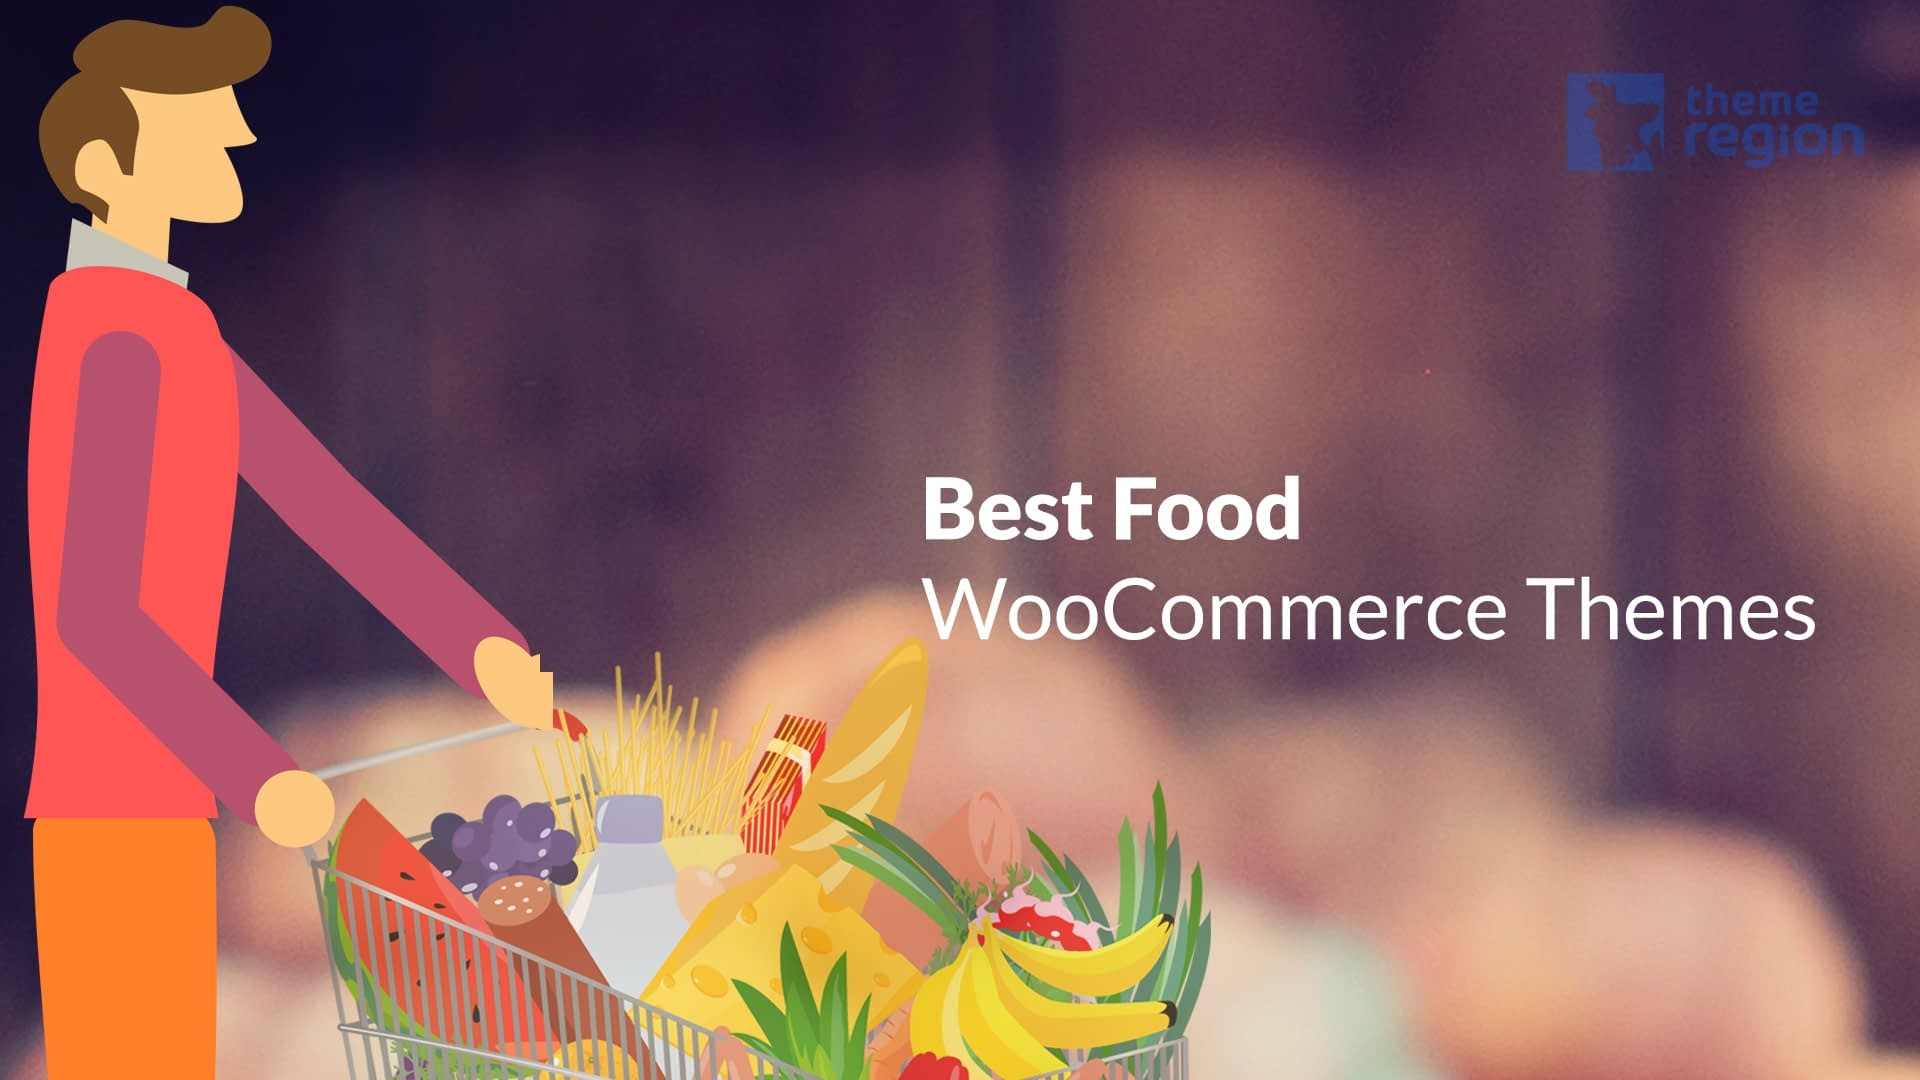 Best Food WooCommerce Themes- Limited Edition, Hurry up!